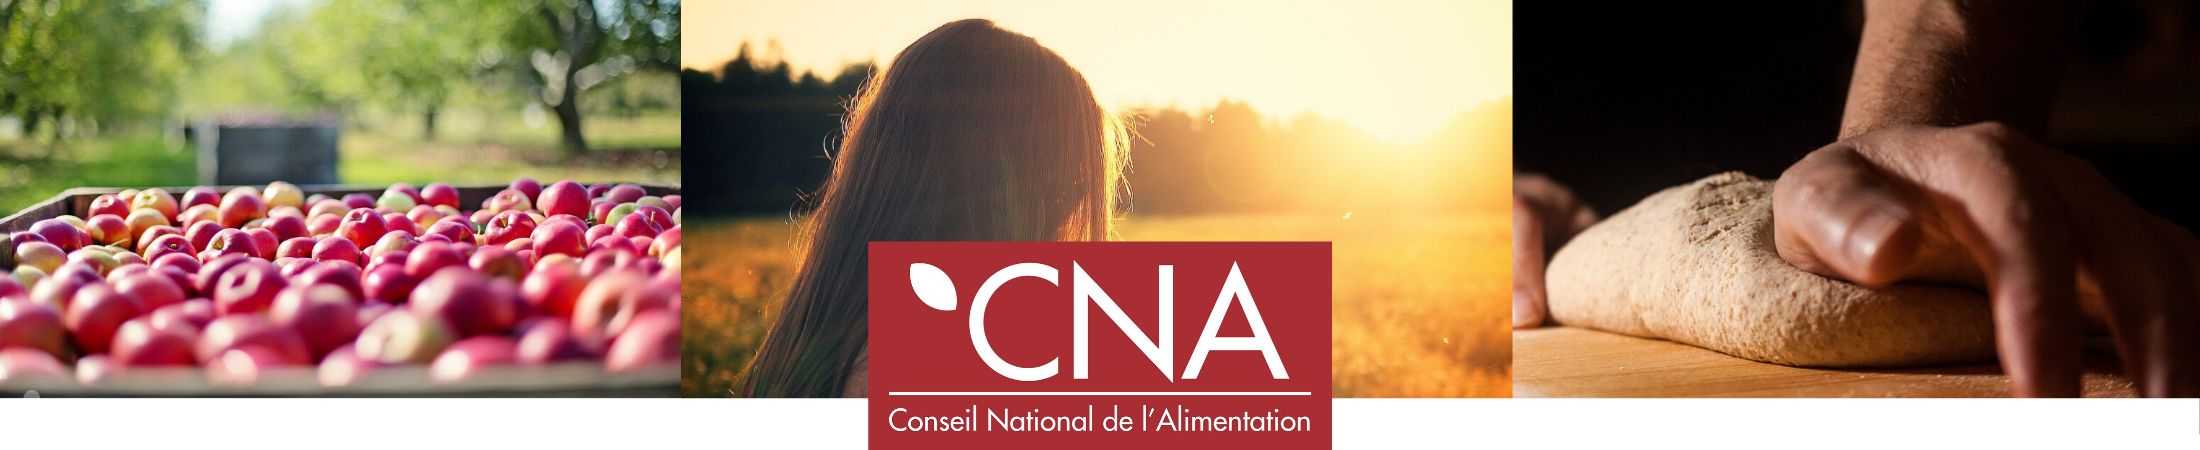 Conseil National de l'Alimentation